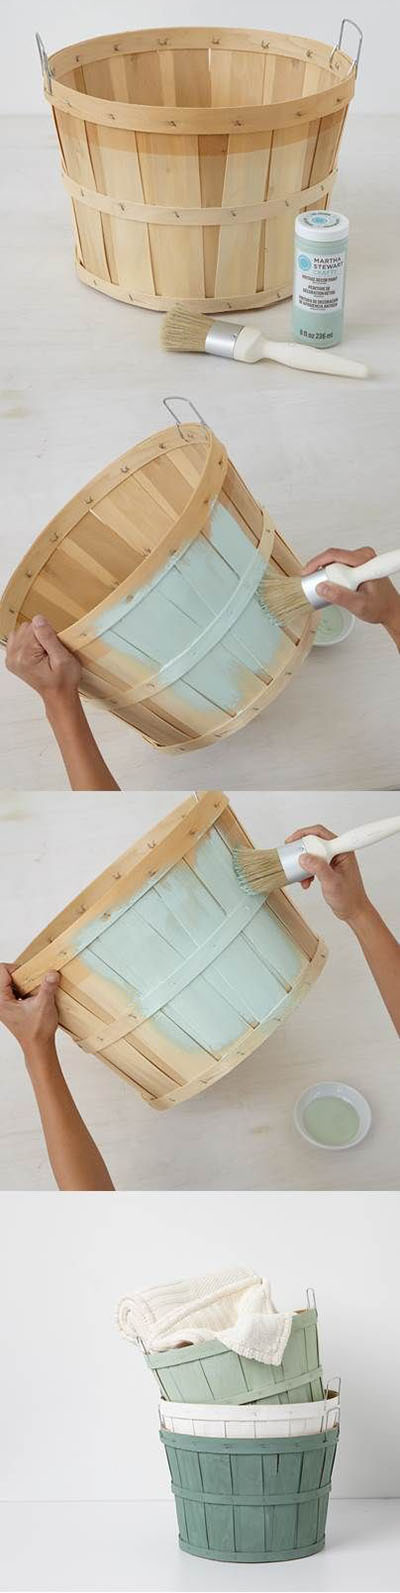 2 Customize orchard baskets with Vintage Decor Paint bcef